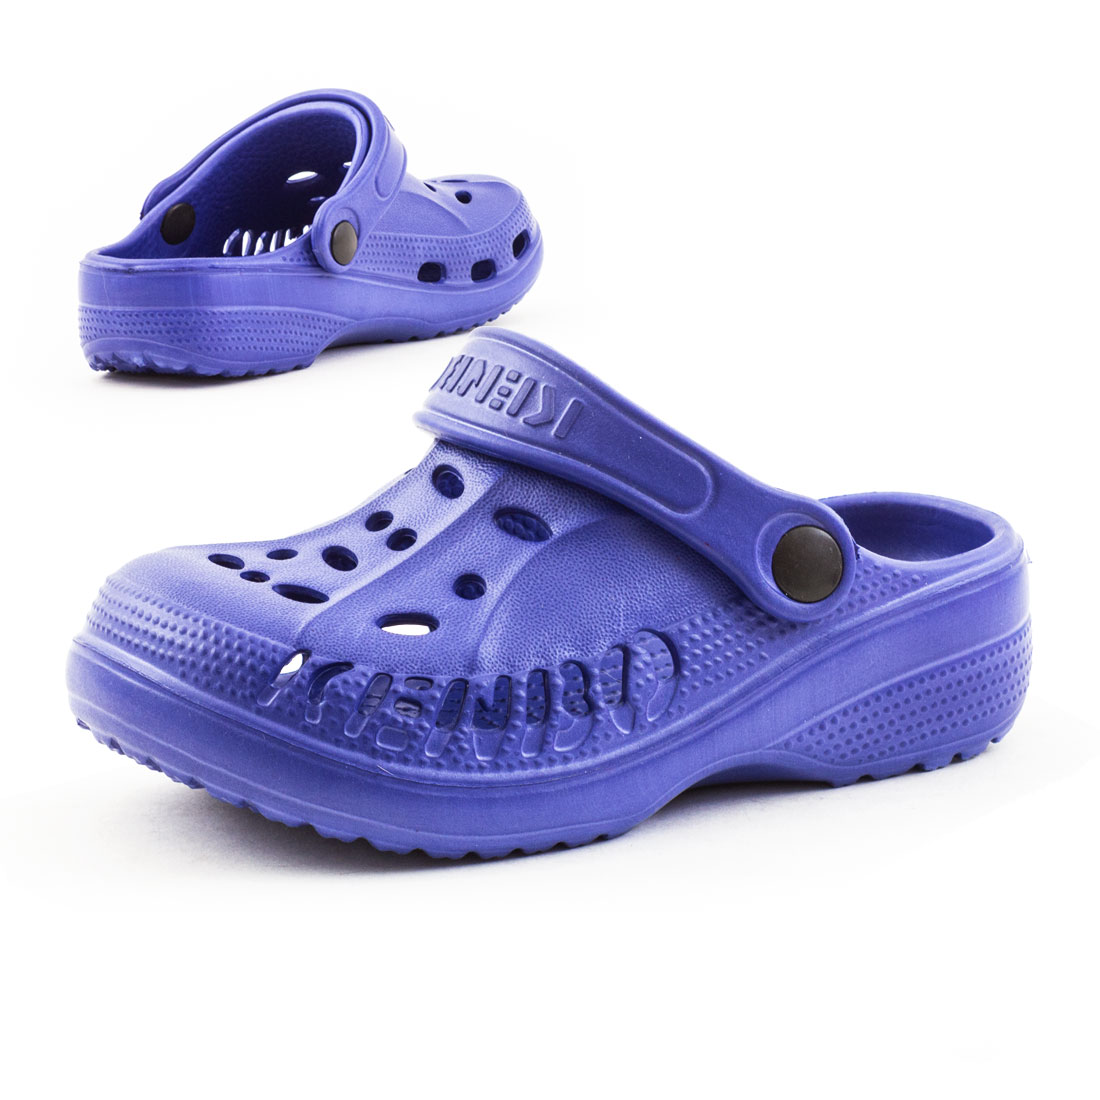 neu damen kinder unisex sandalen wasser sommer garten schuhe gr 26 46 ebay. Black Bedroom Furniture Sets. Home Design Ideas